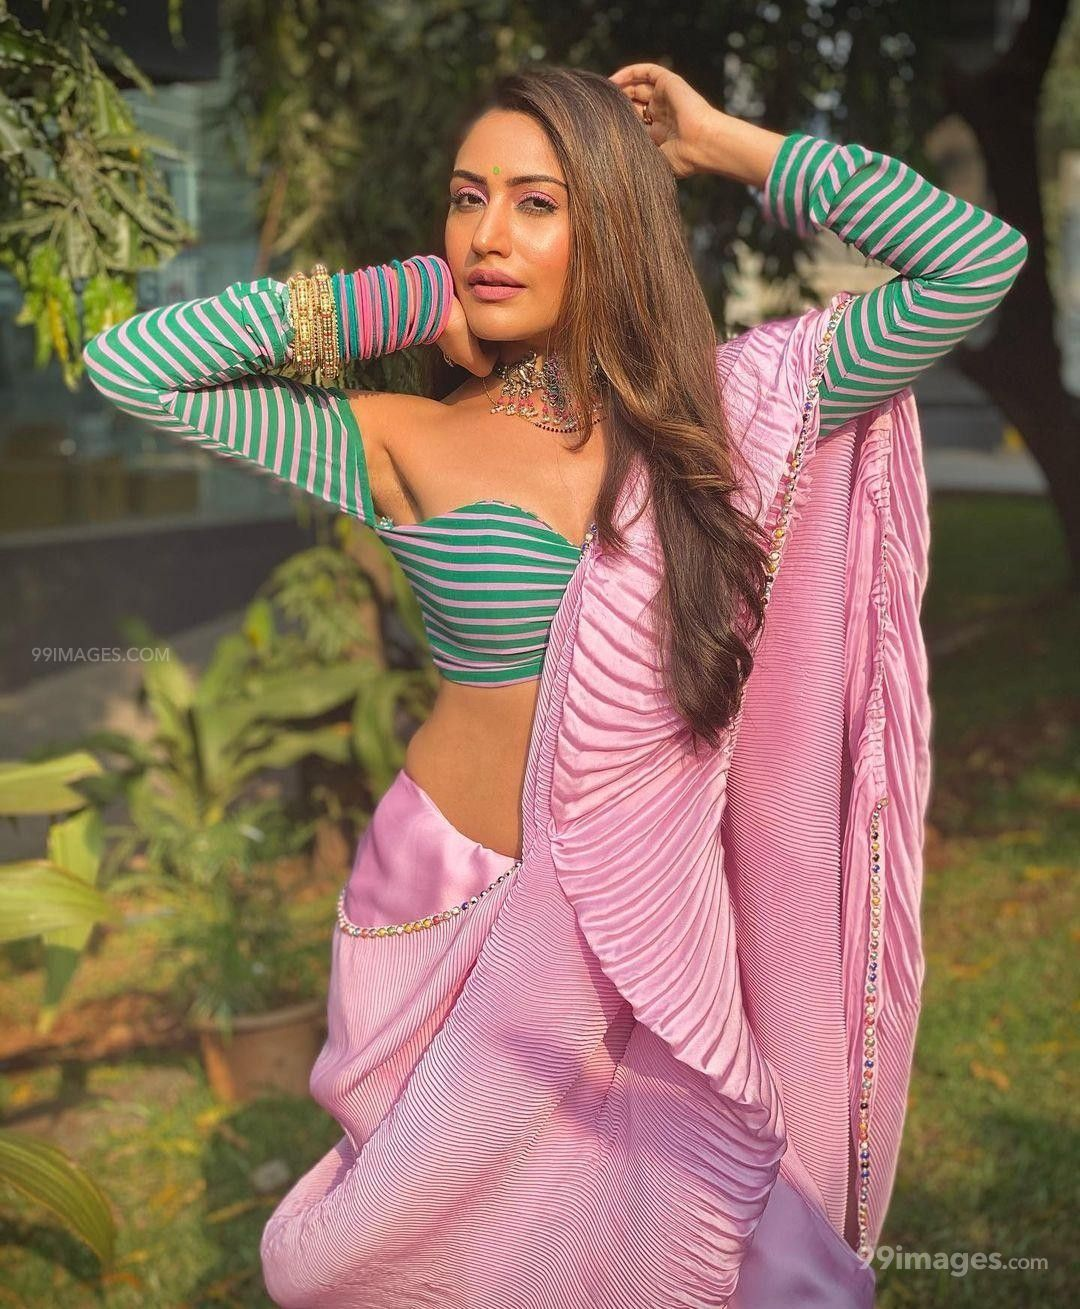 Surbhi Chandna  Hot HD Photos & Wallpapers for mobile Download, WhatsApp DP (1080p) (640971) - Surbhi Chandna